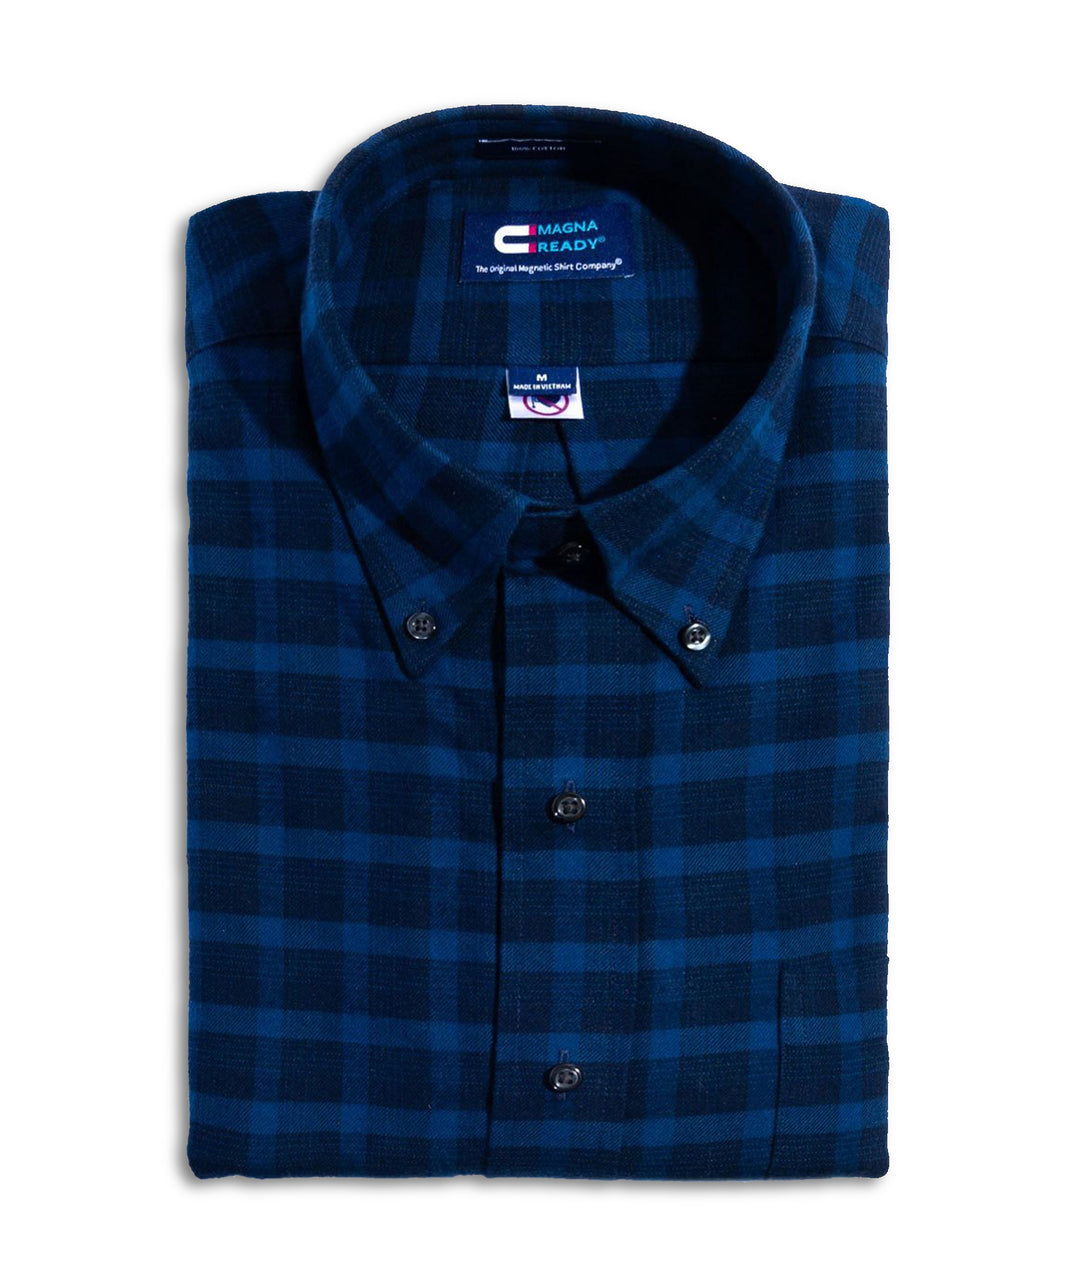 Navy Plaid Flannel Long Sleeve Shirt with Magnetic Closures | JUNIPERunltd